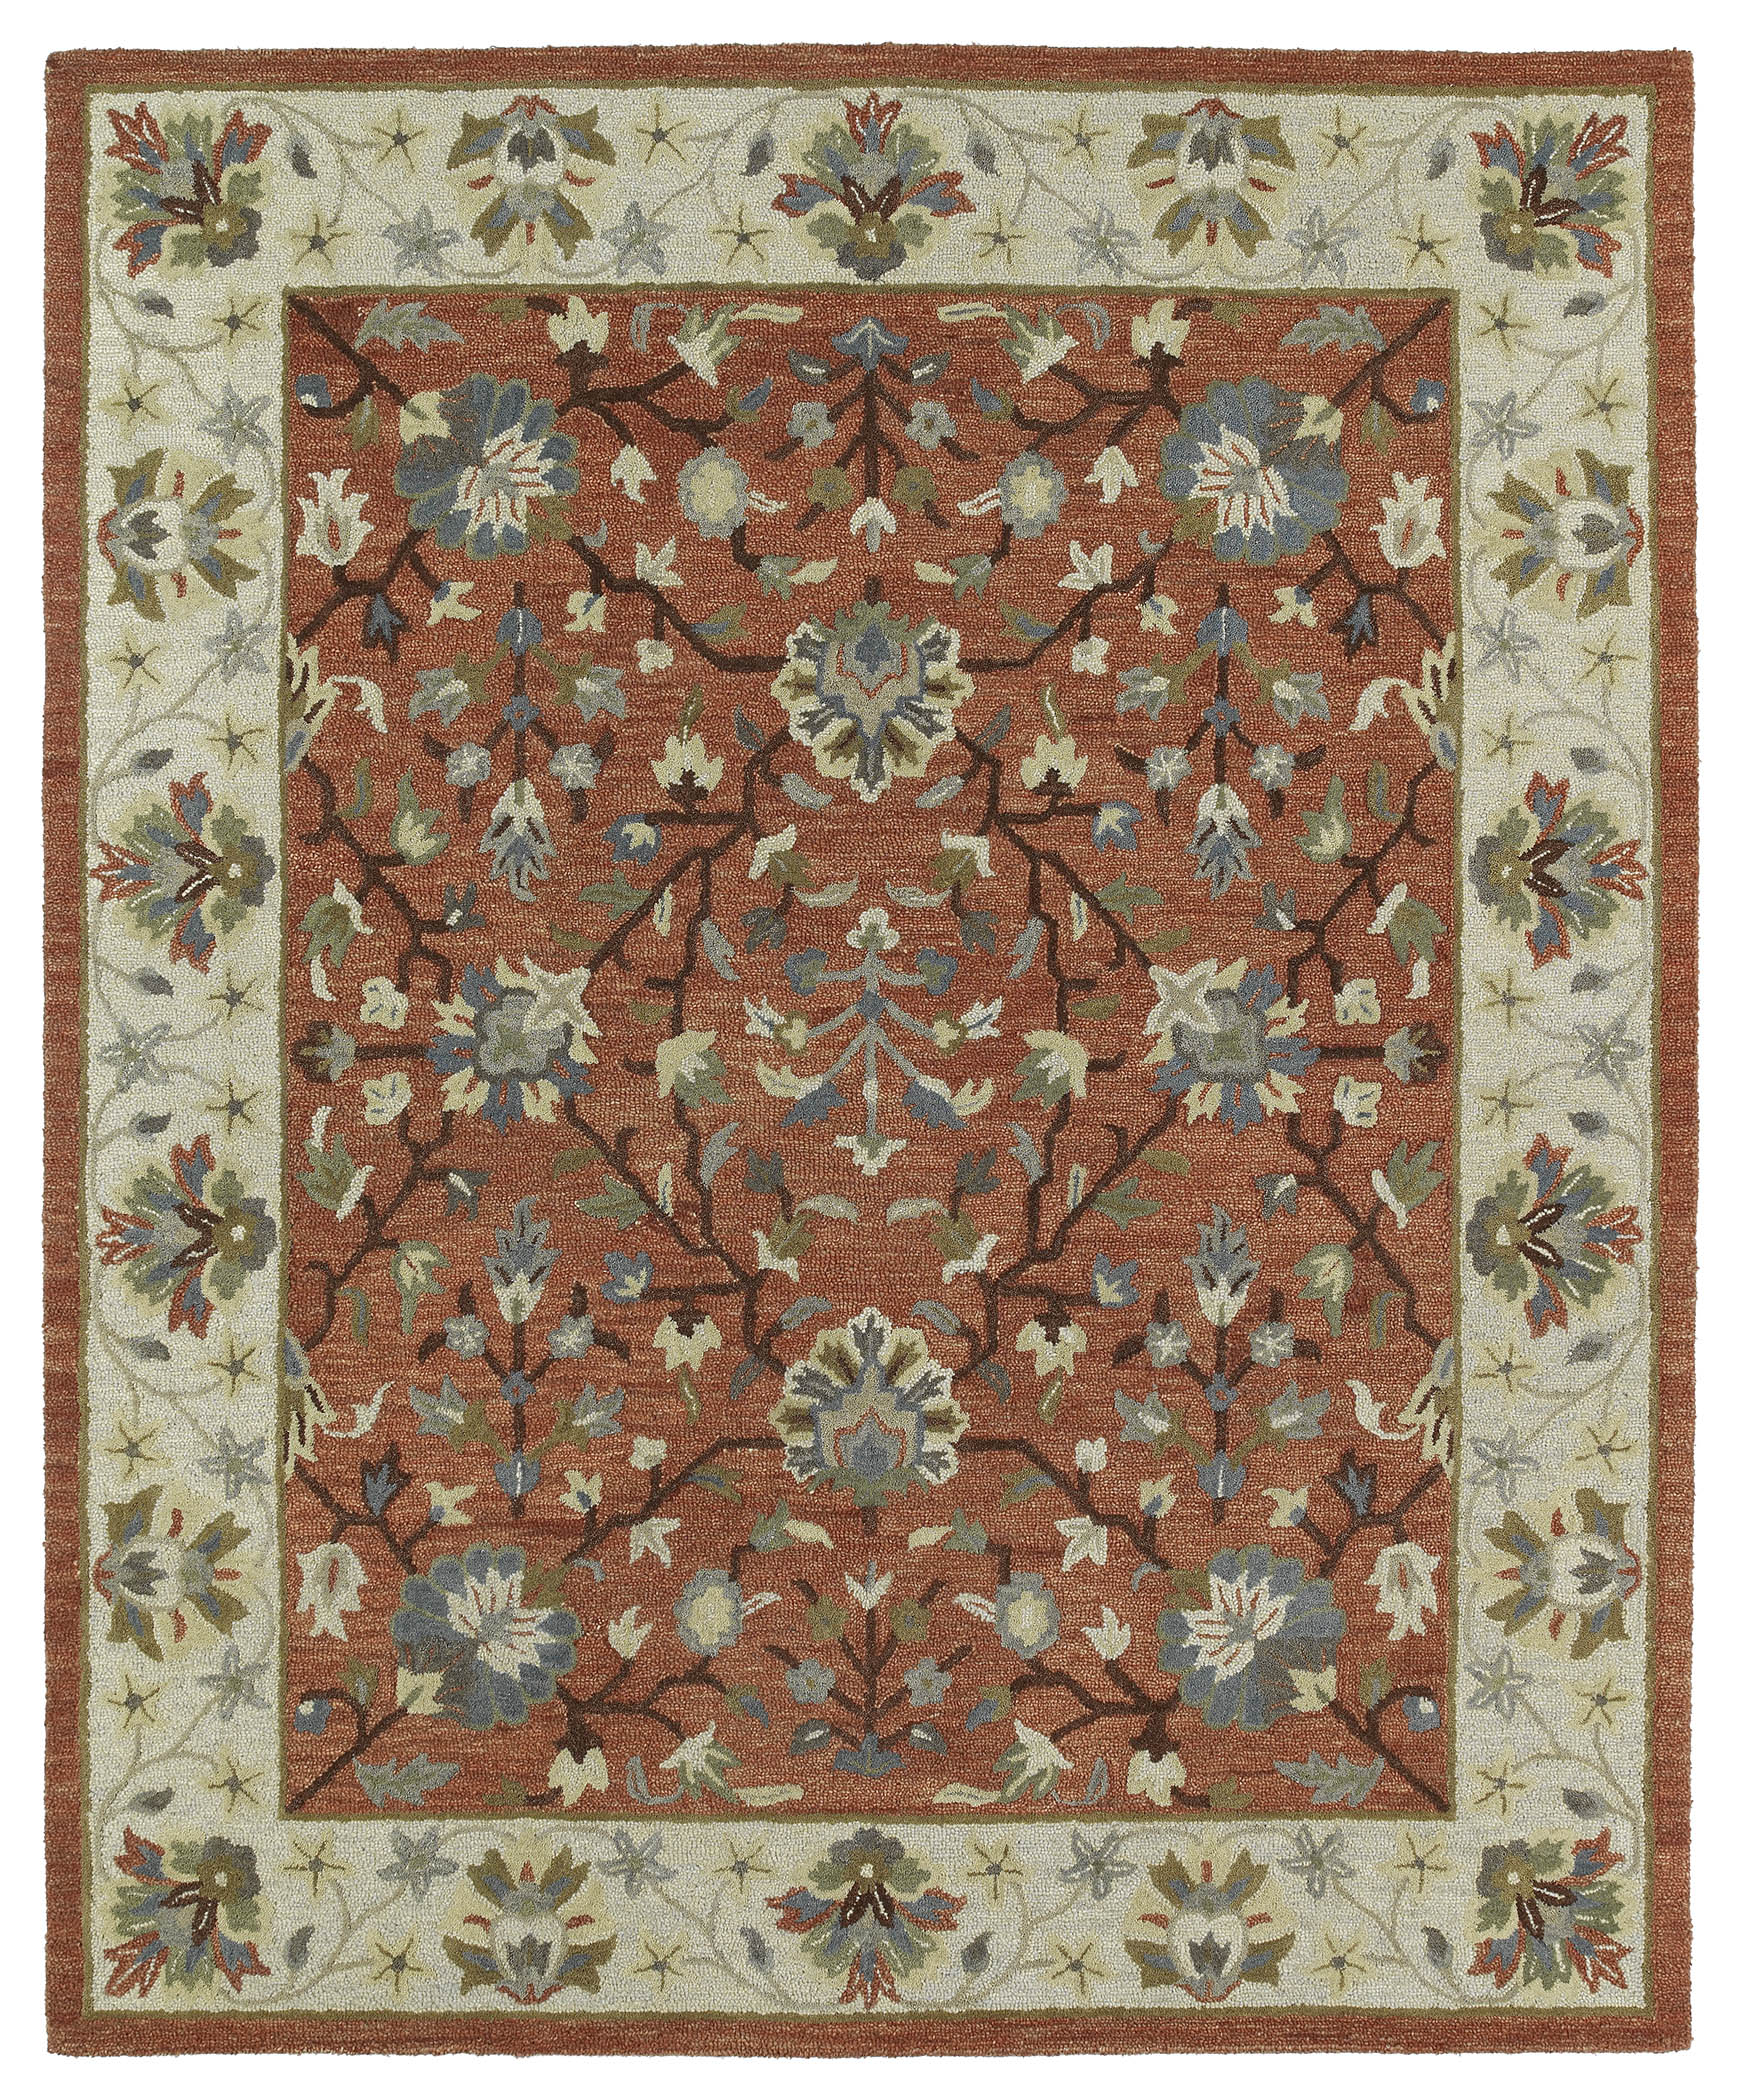 Kaleen Brooklyn Keaton 5305 06 Brick Rug